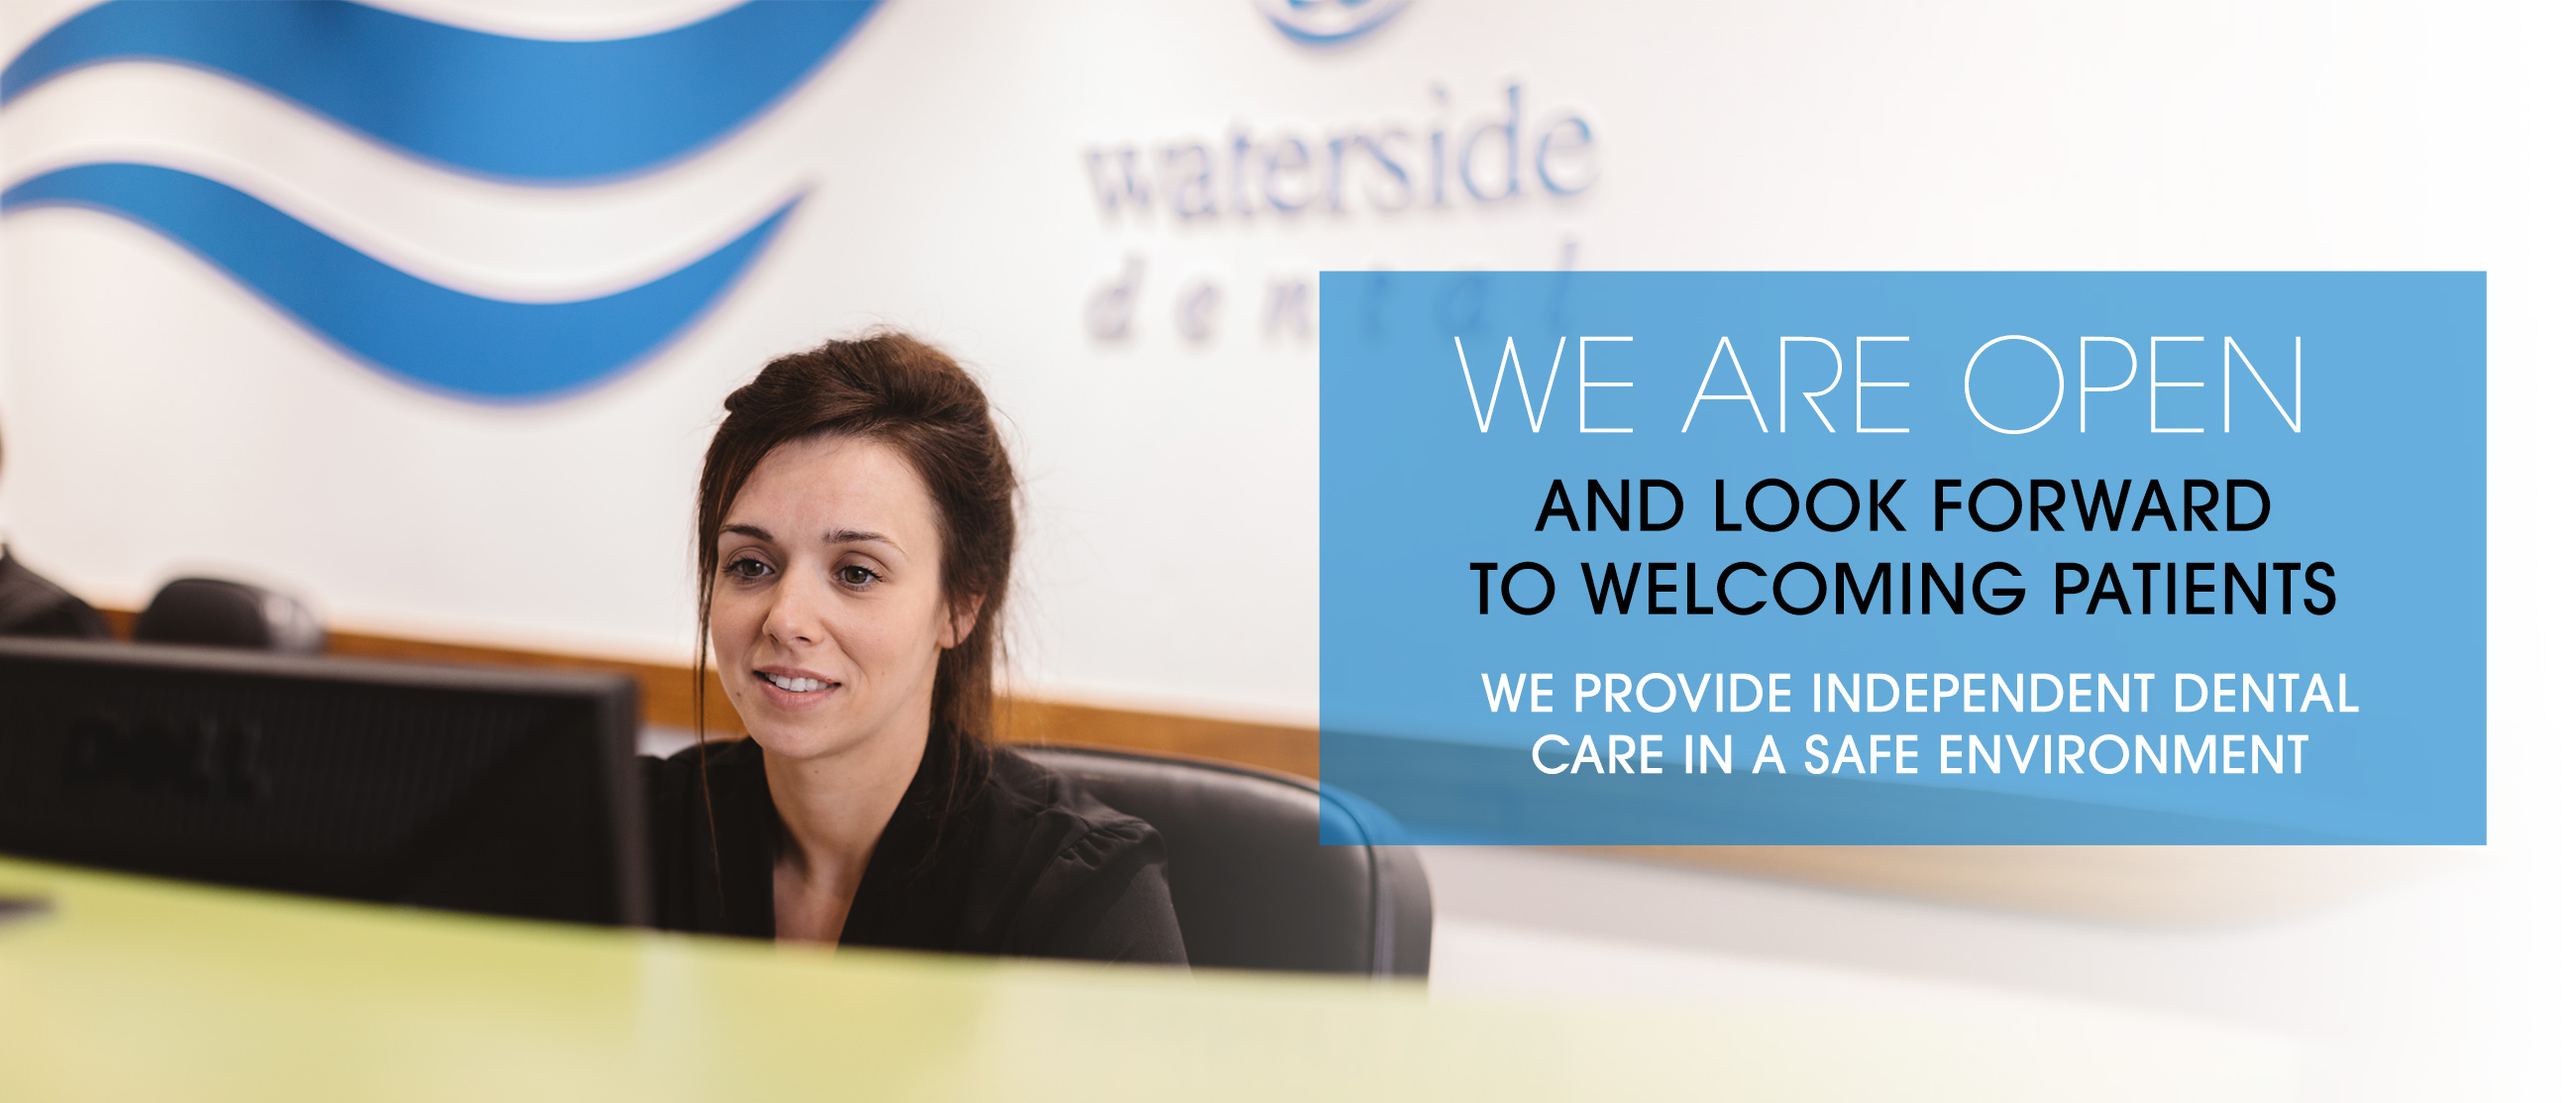 Welcome to Waterside Dental